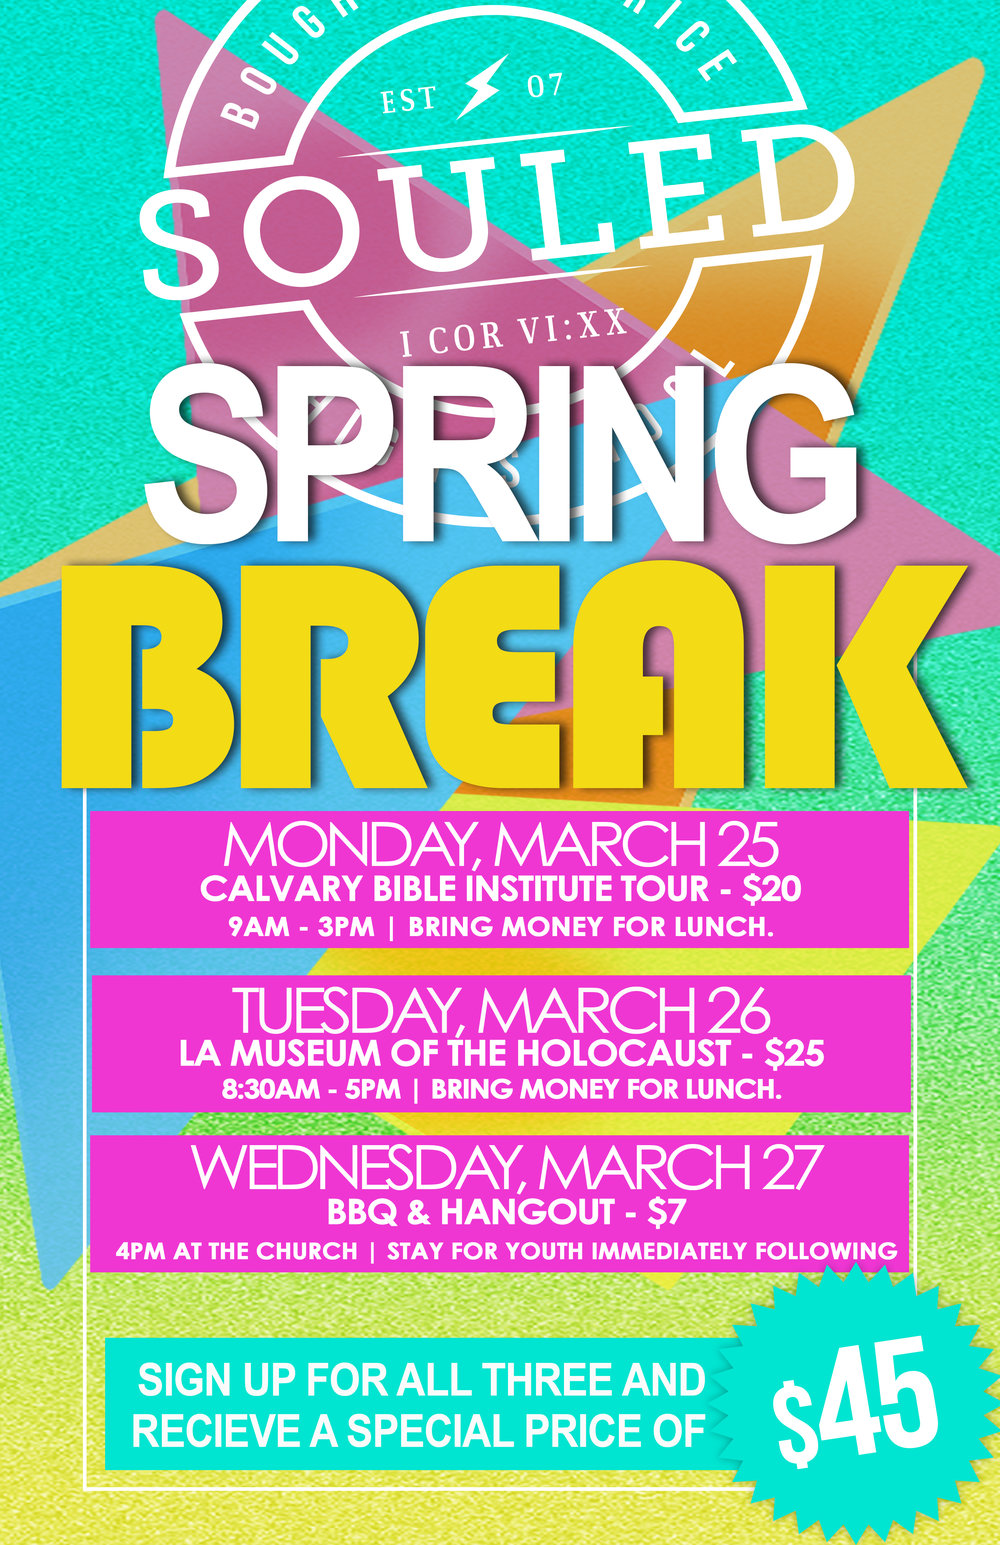 2019 SpringBreak Flyer.jpg